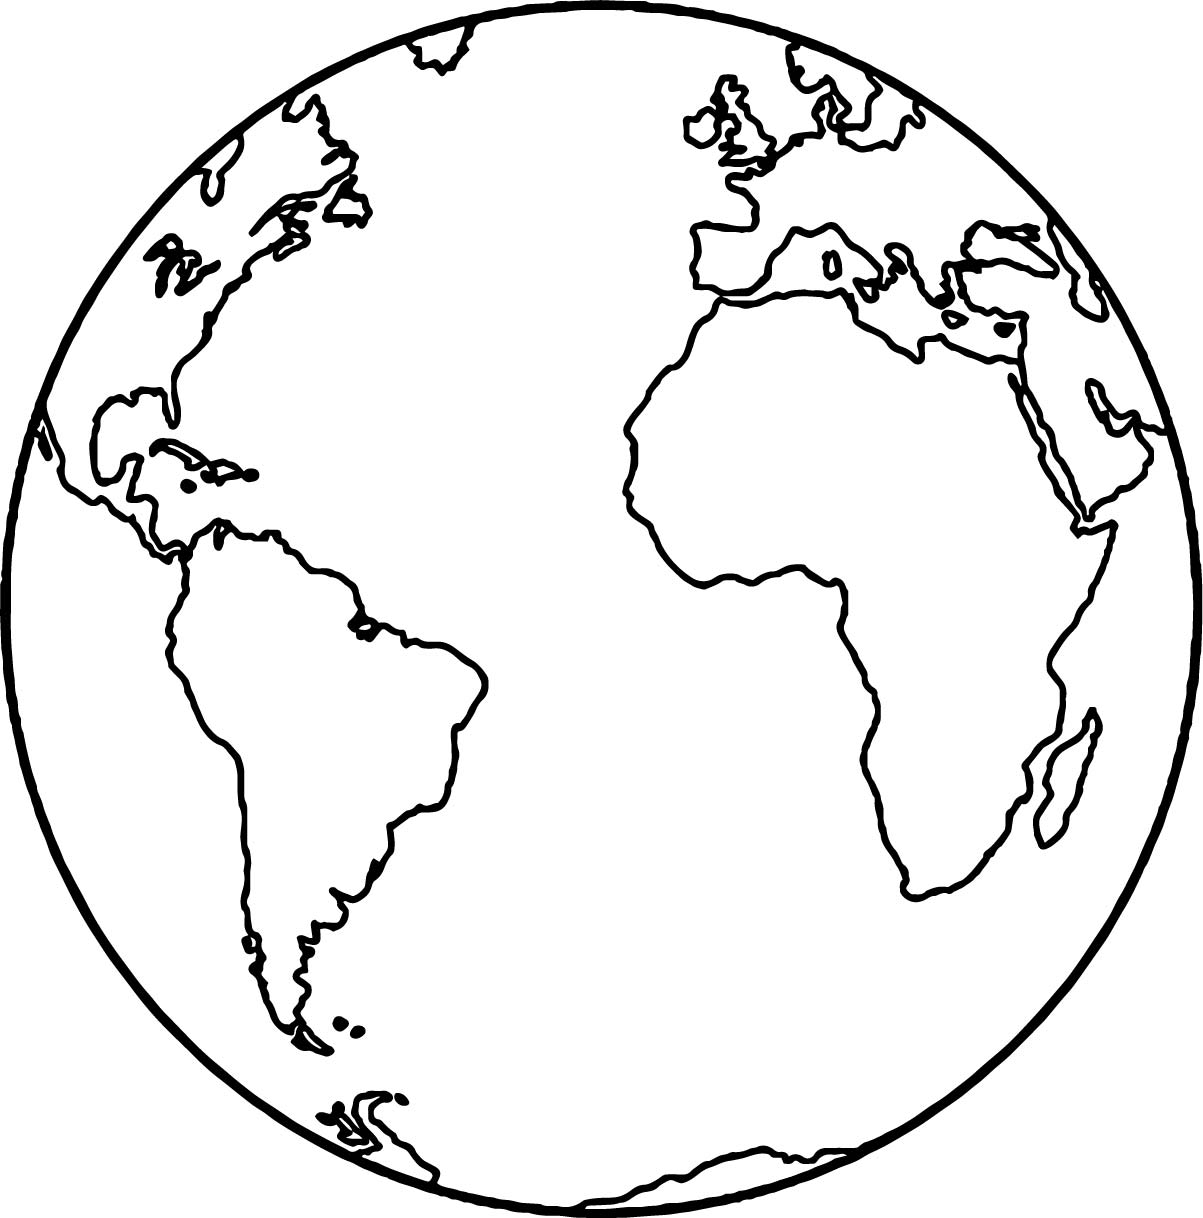 1203x1218 Globe Coloring Page Childlife Me